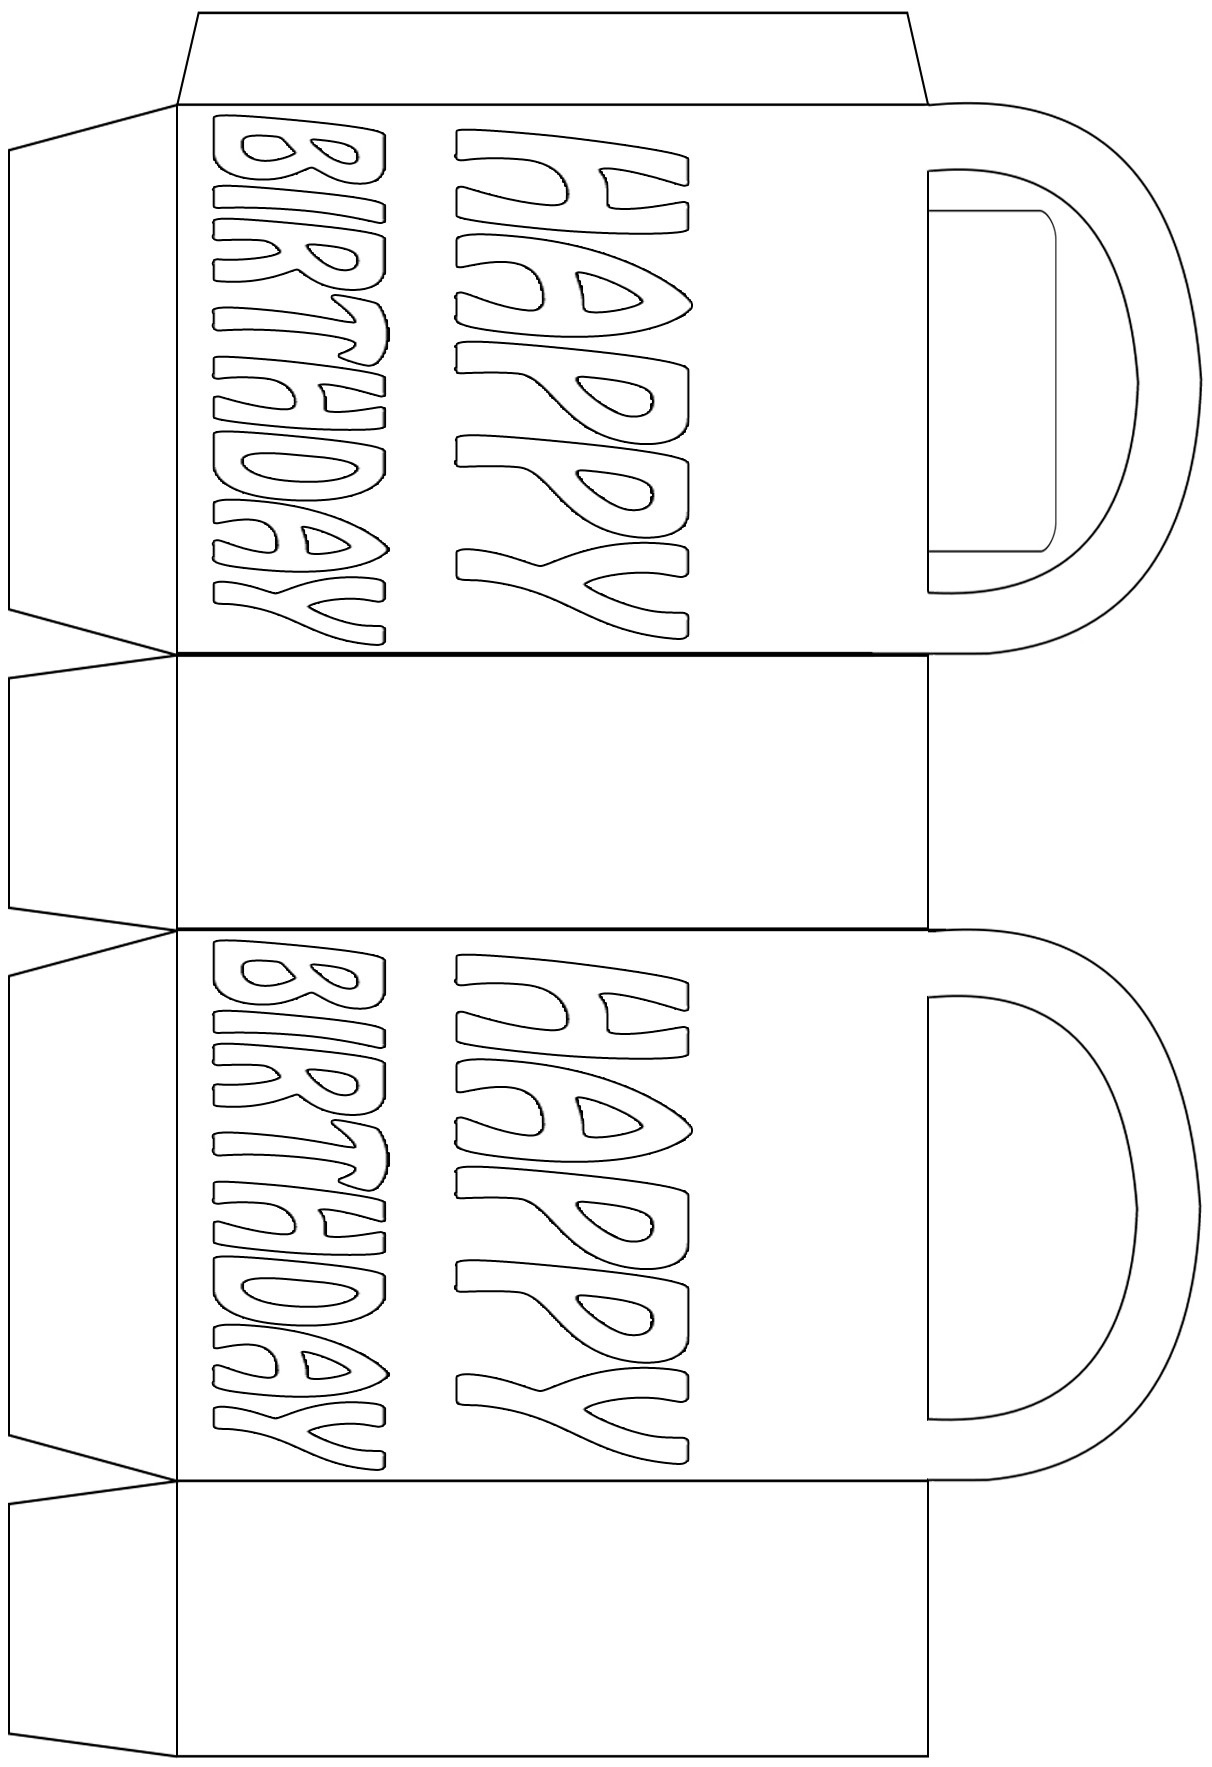 Colouring in bag - Birthday Party Bag To Colour In